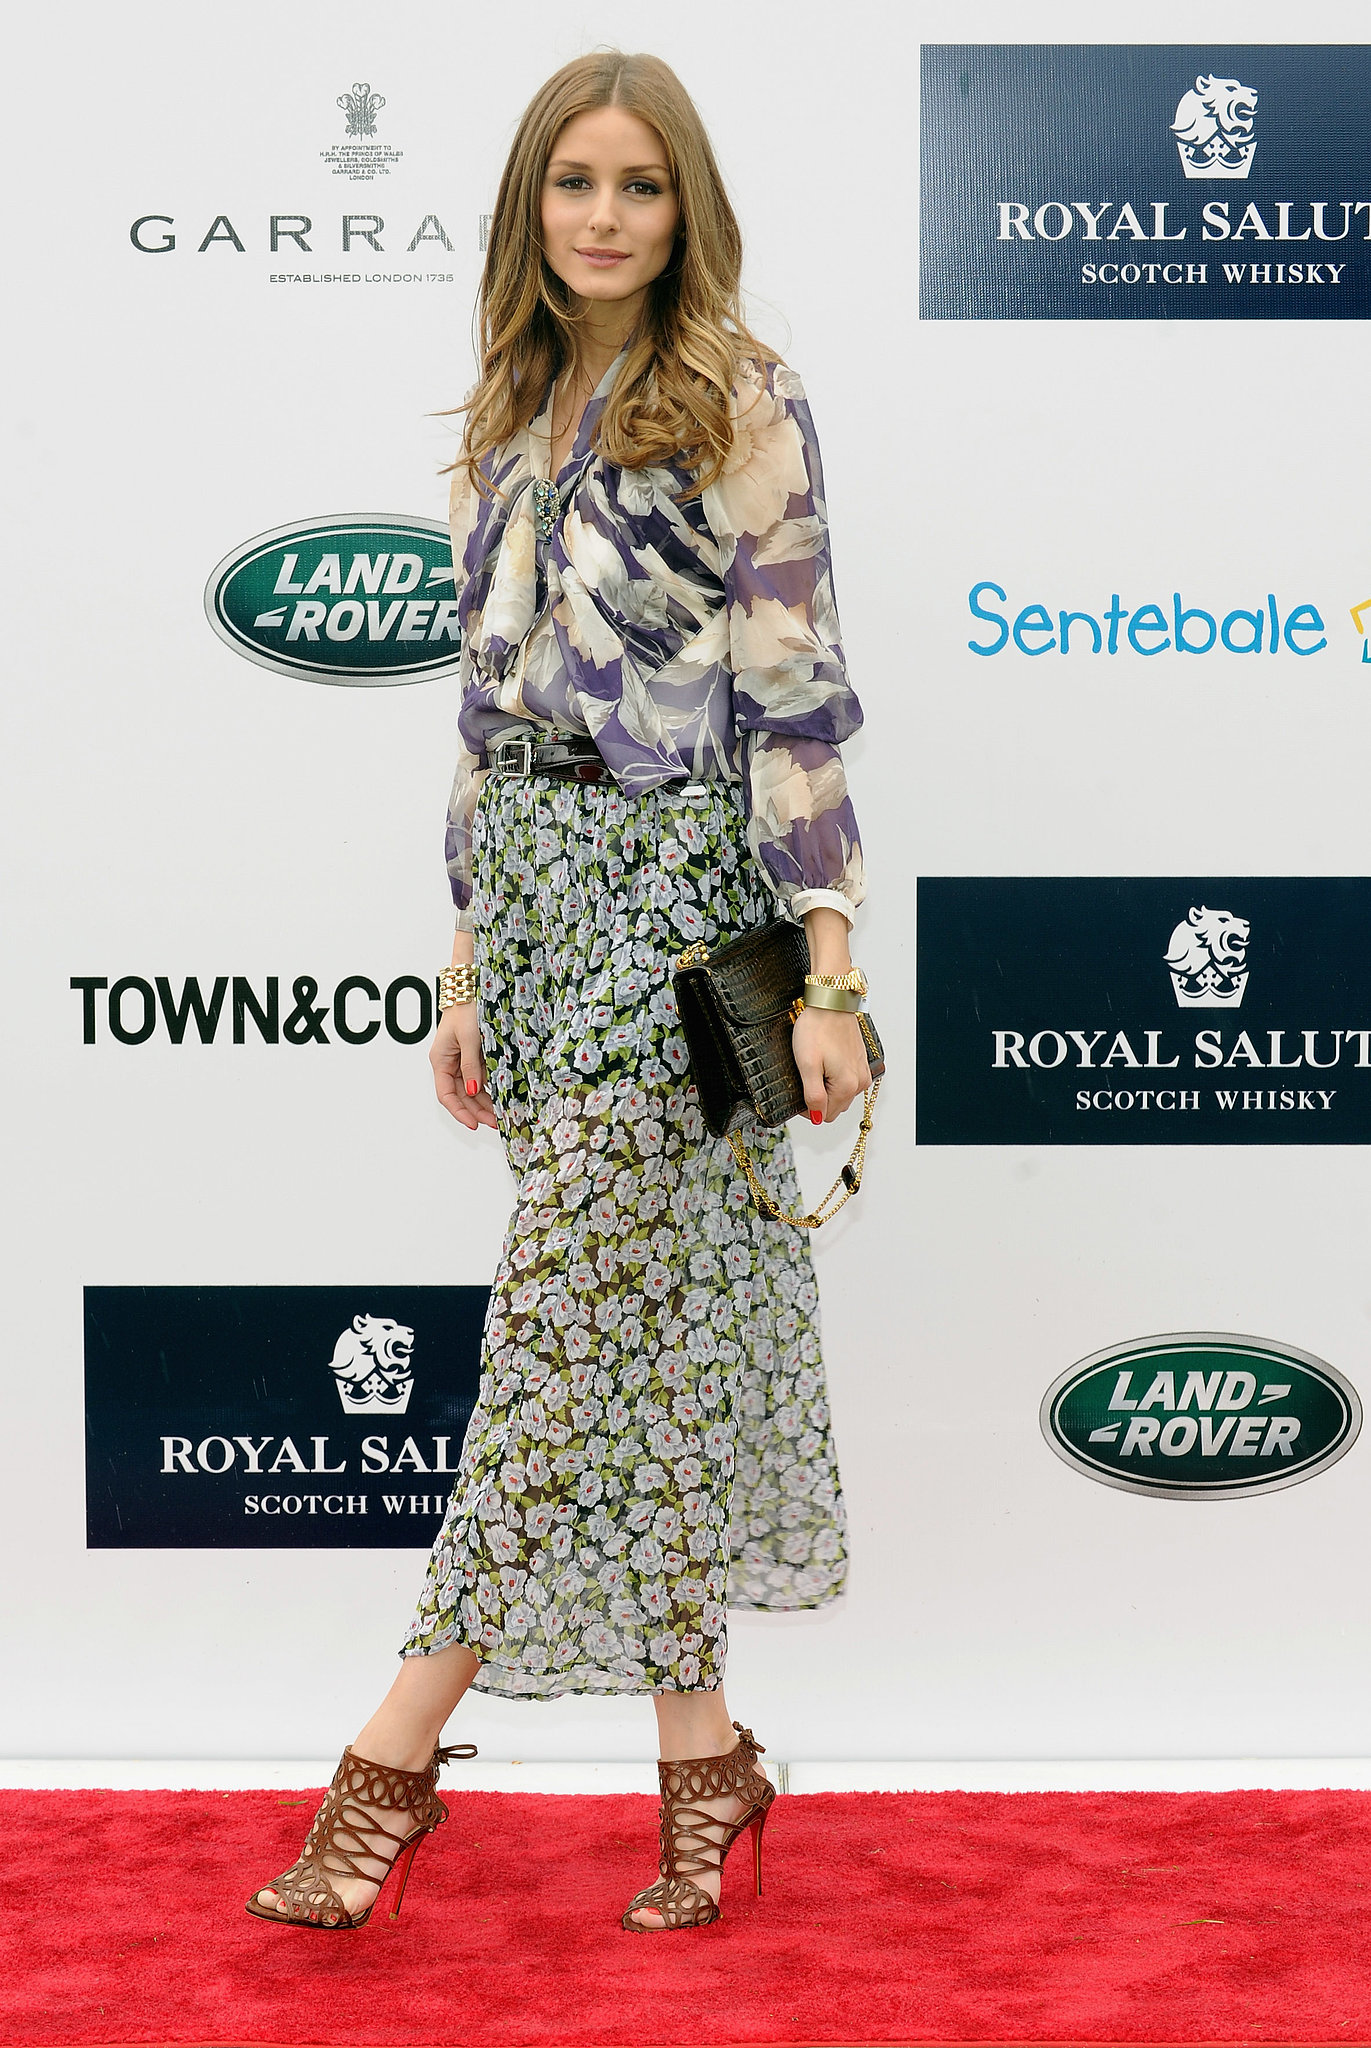 Olivia played with prints at the Sentebale Royal Salute Polo Cup in a sheer top and maxi, both adorned with watercolor floral prints. She added structure with a black belt and decadent croc bag, and finished everything off with a pair of on-trend sandal booties from Christian Louboutin.